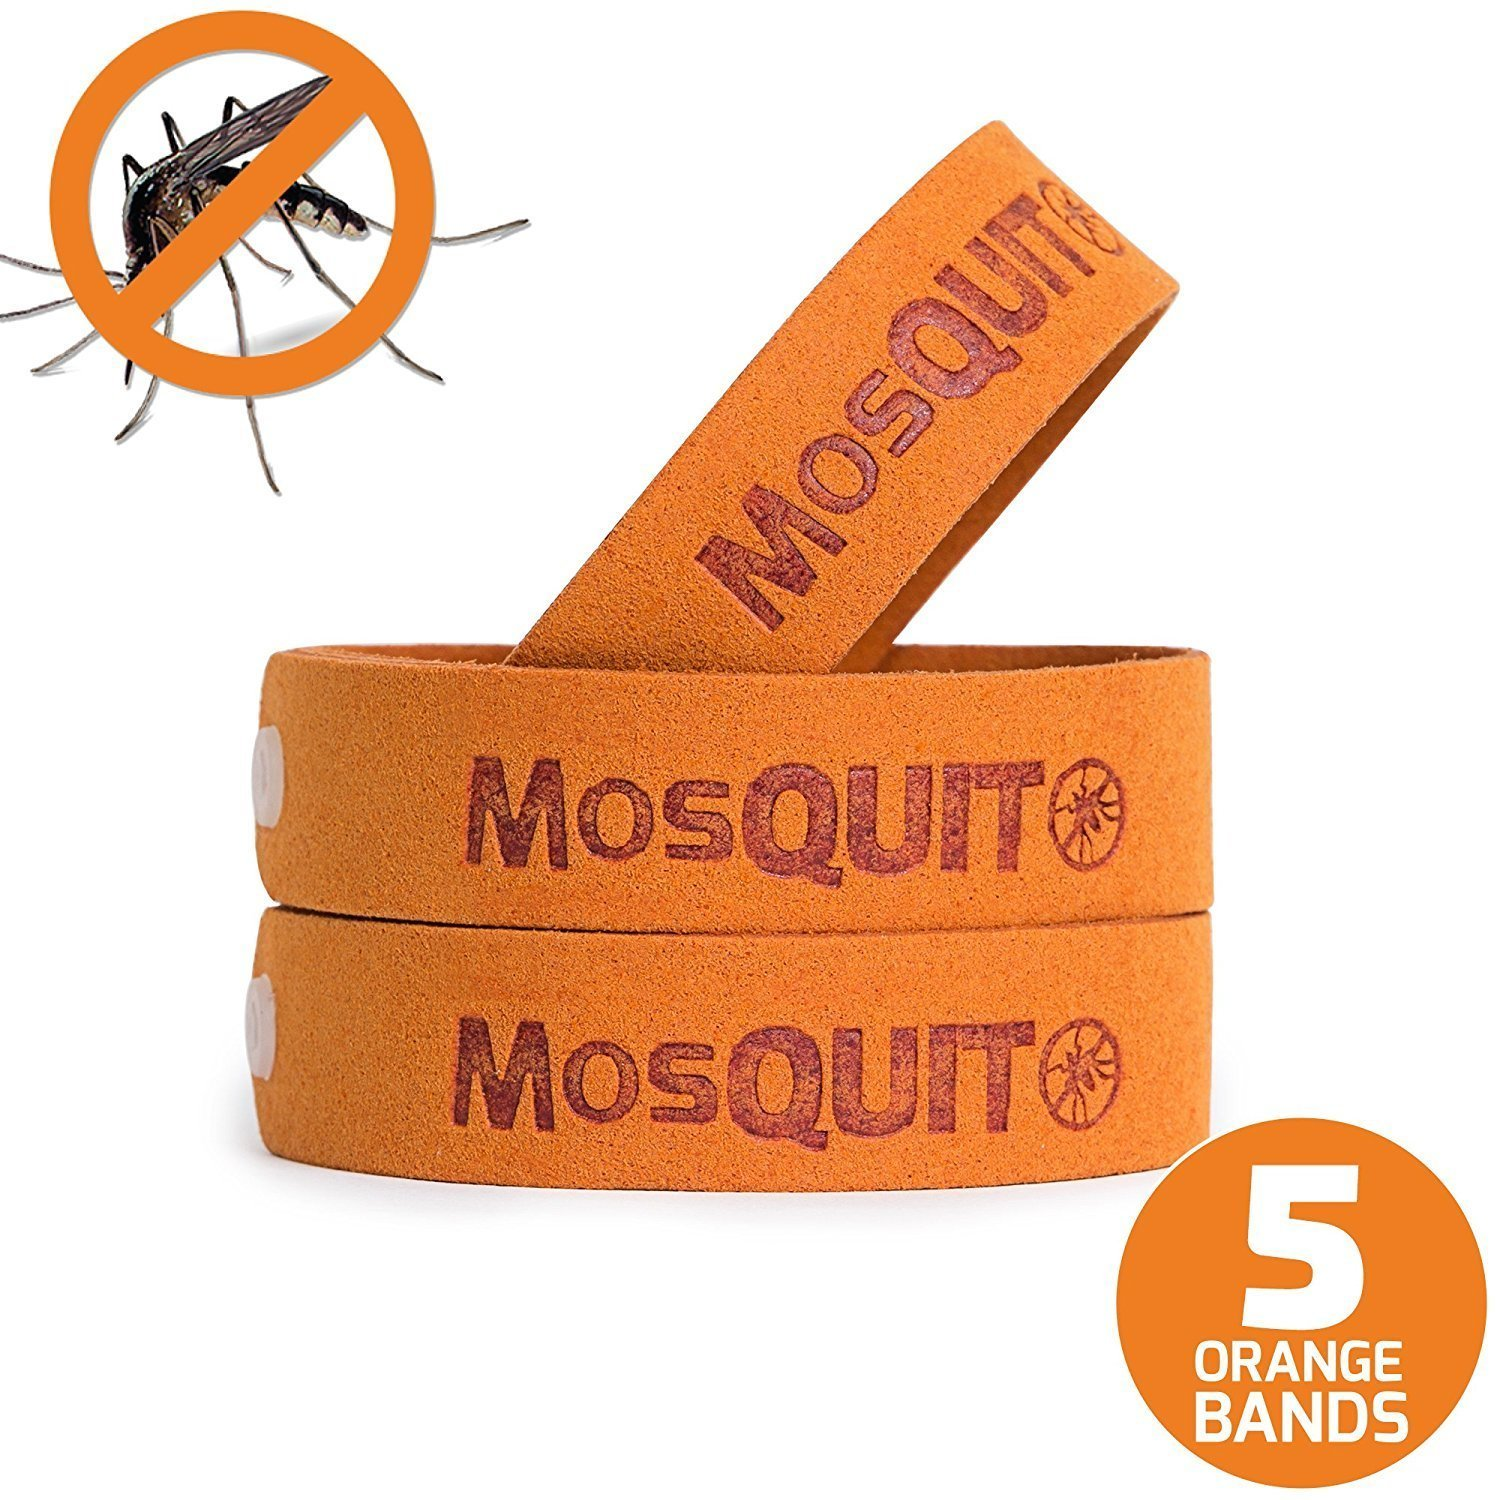 MosQuitO Repellent Bracelets 5 Pack - All Natural Ingredients Insect Repellent -